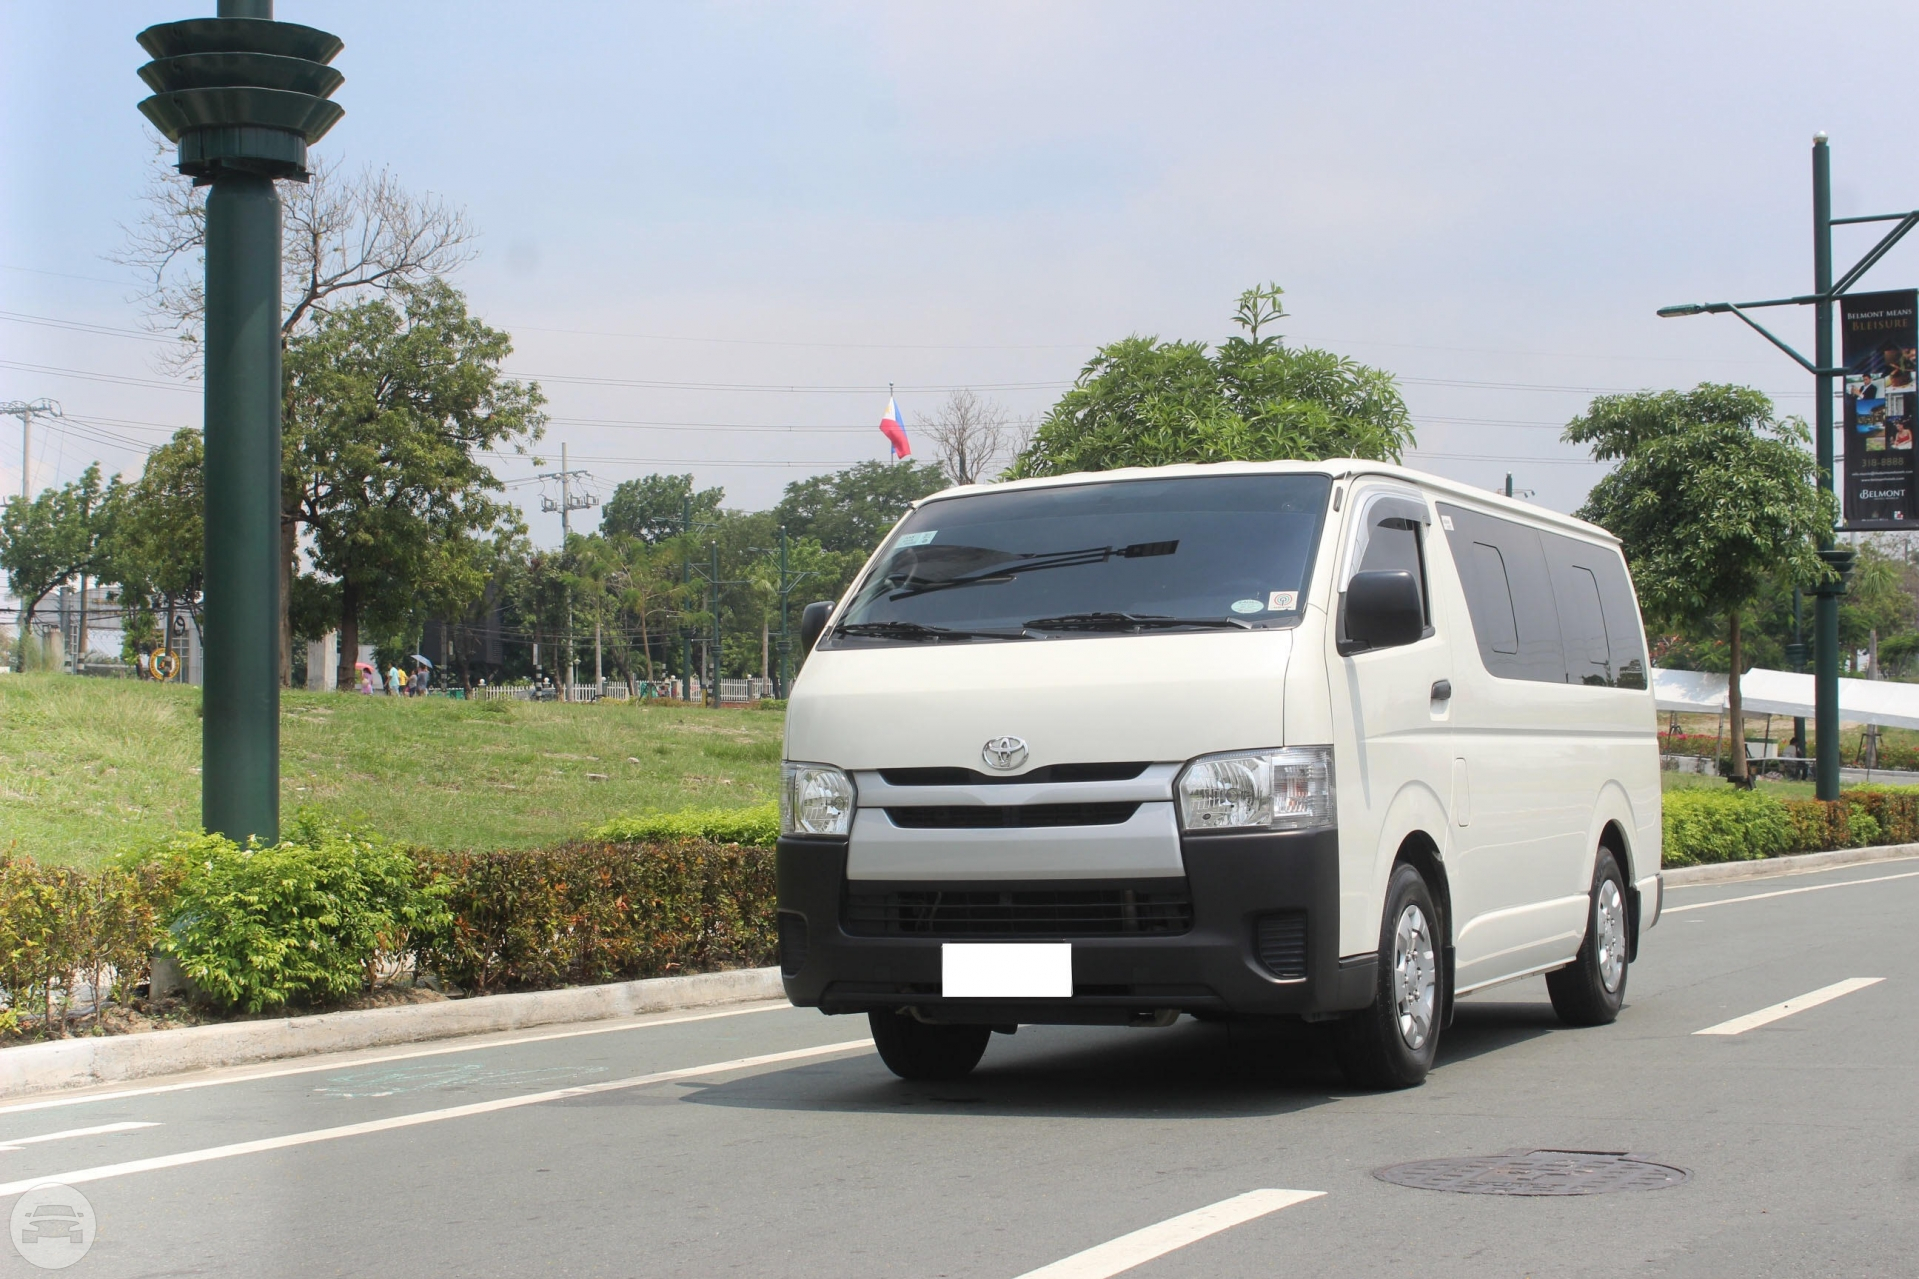 15-18 Seater Toyota Hiace Commuter Van  / Taguig, Metro Manila   / Airport Transfer ₱3,000.00  / Daily ₱3,500.00